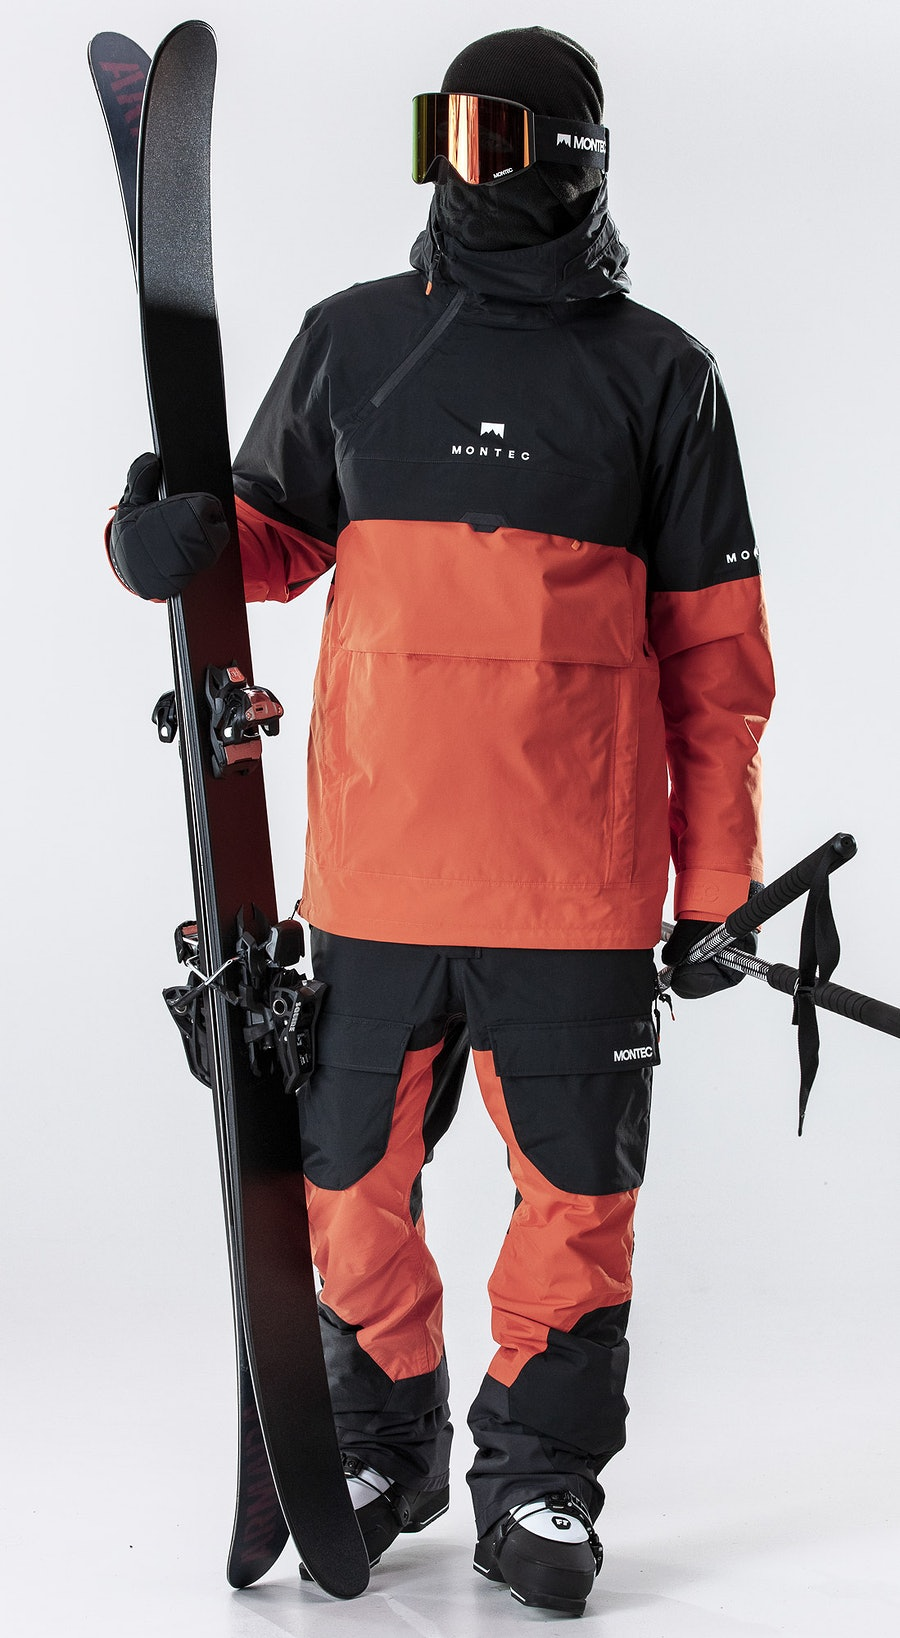 Montec Dune Black/Orange Skibekleidung Multi